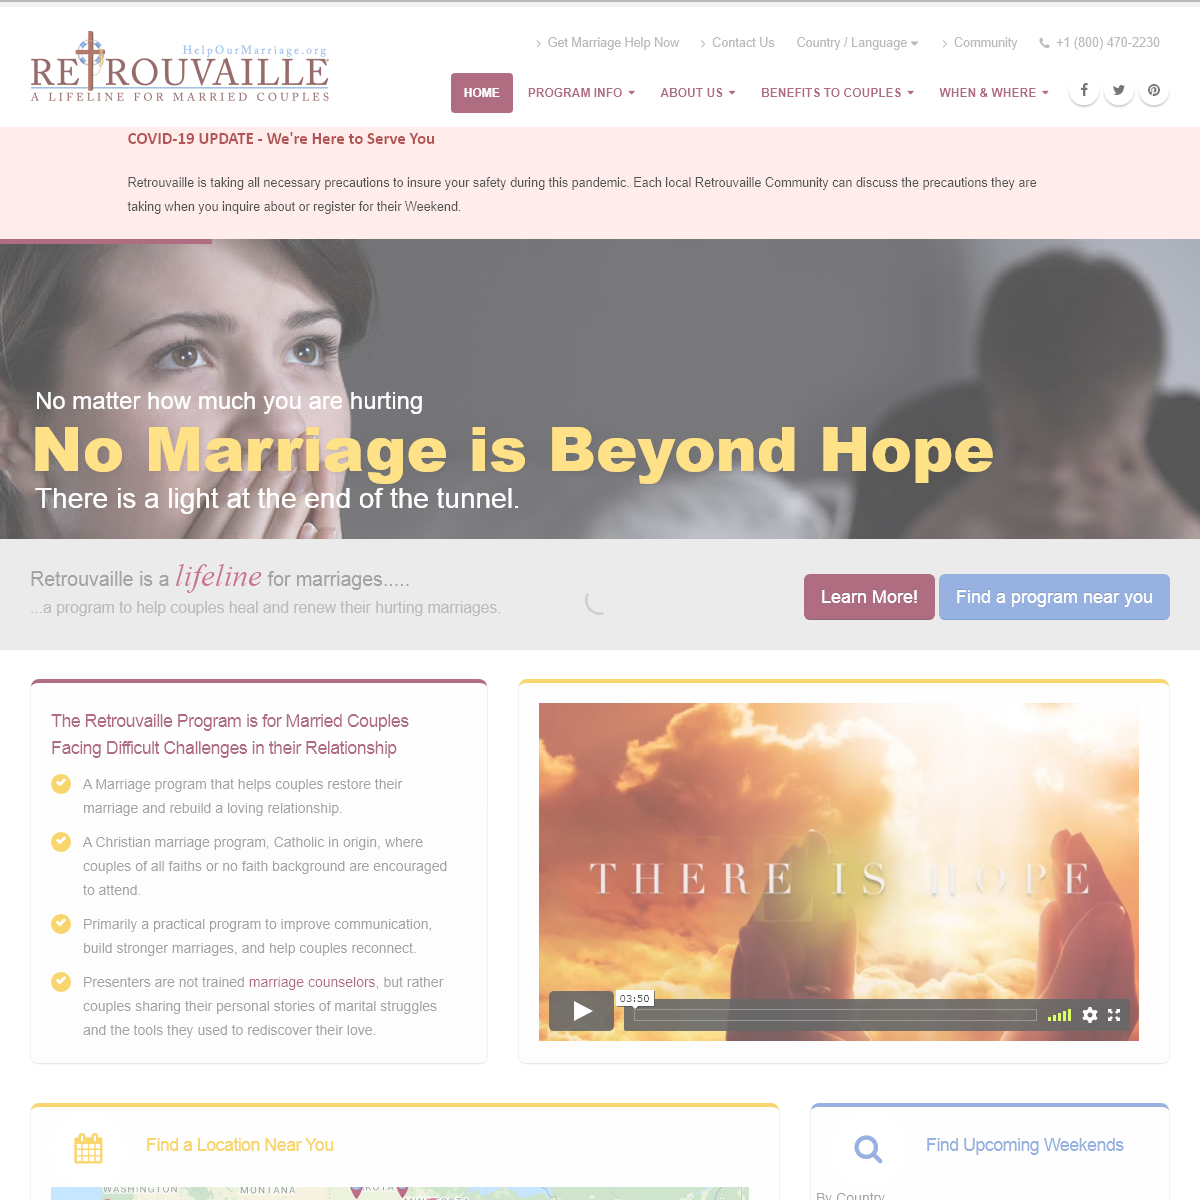 Retrouvaille Marriage Help Program For Struggling Couples